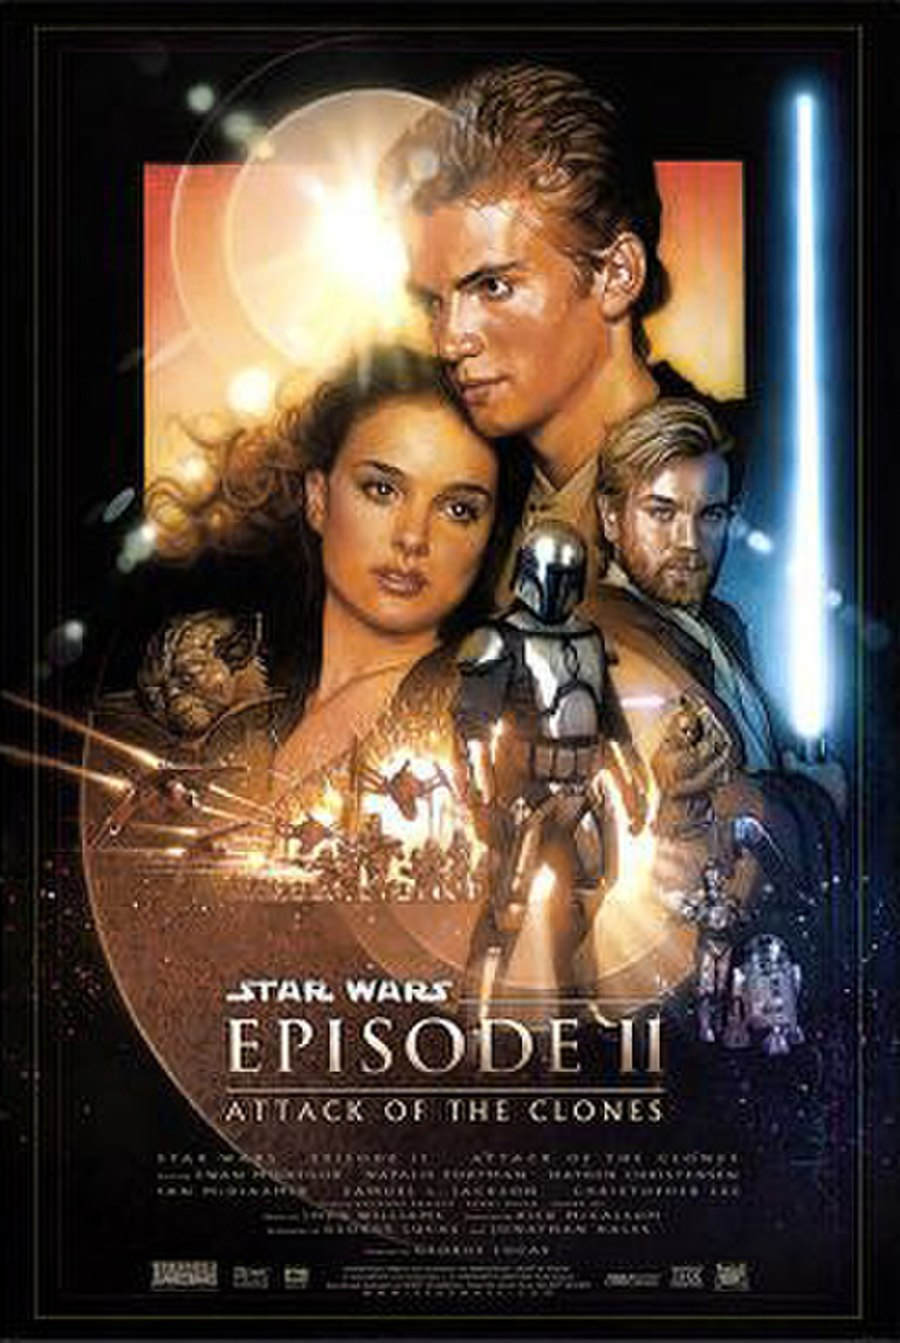 Star Wars: Episode II – Attack of the Clones